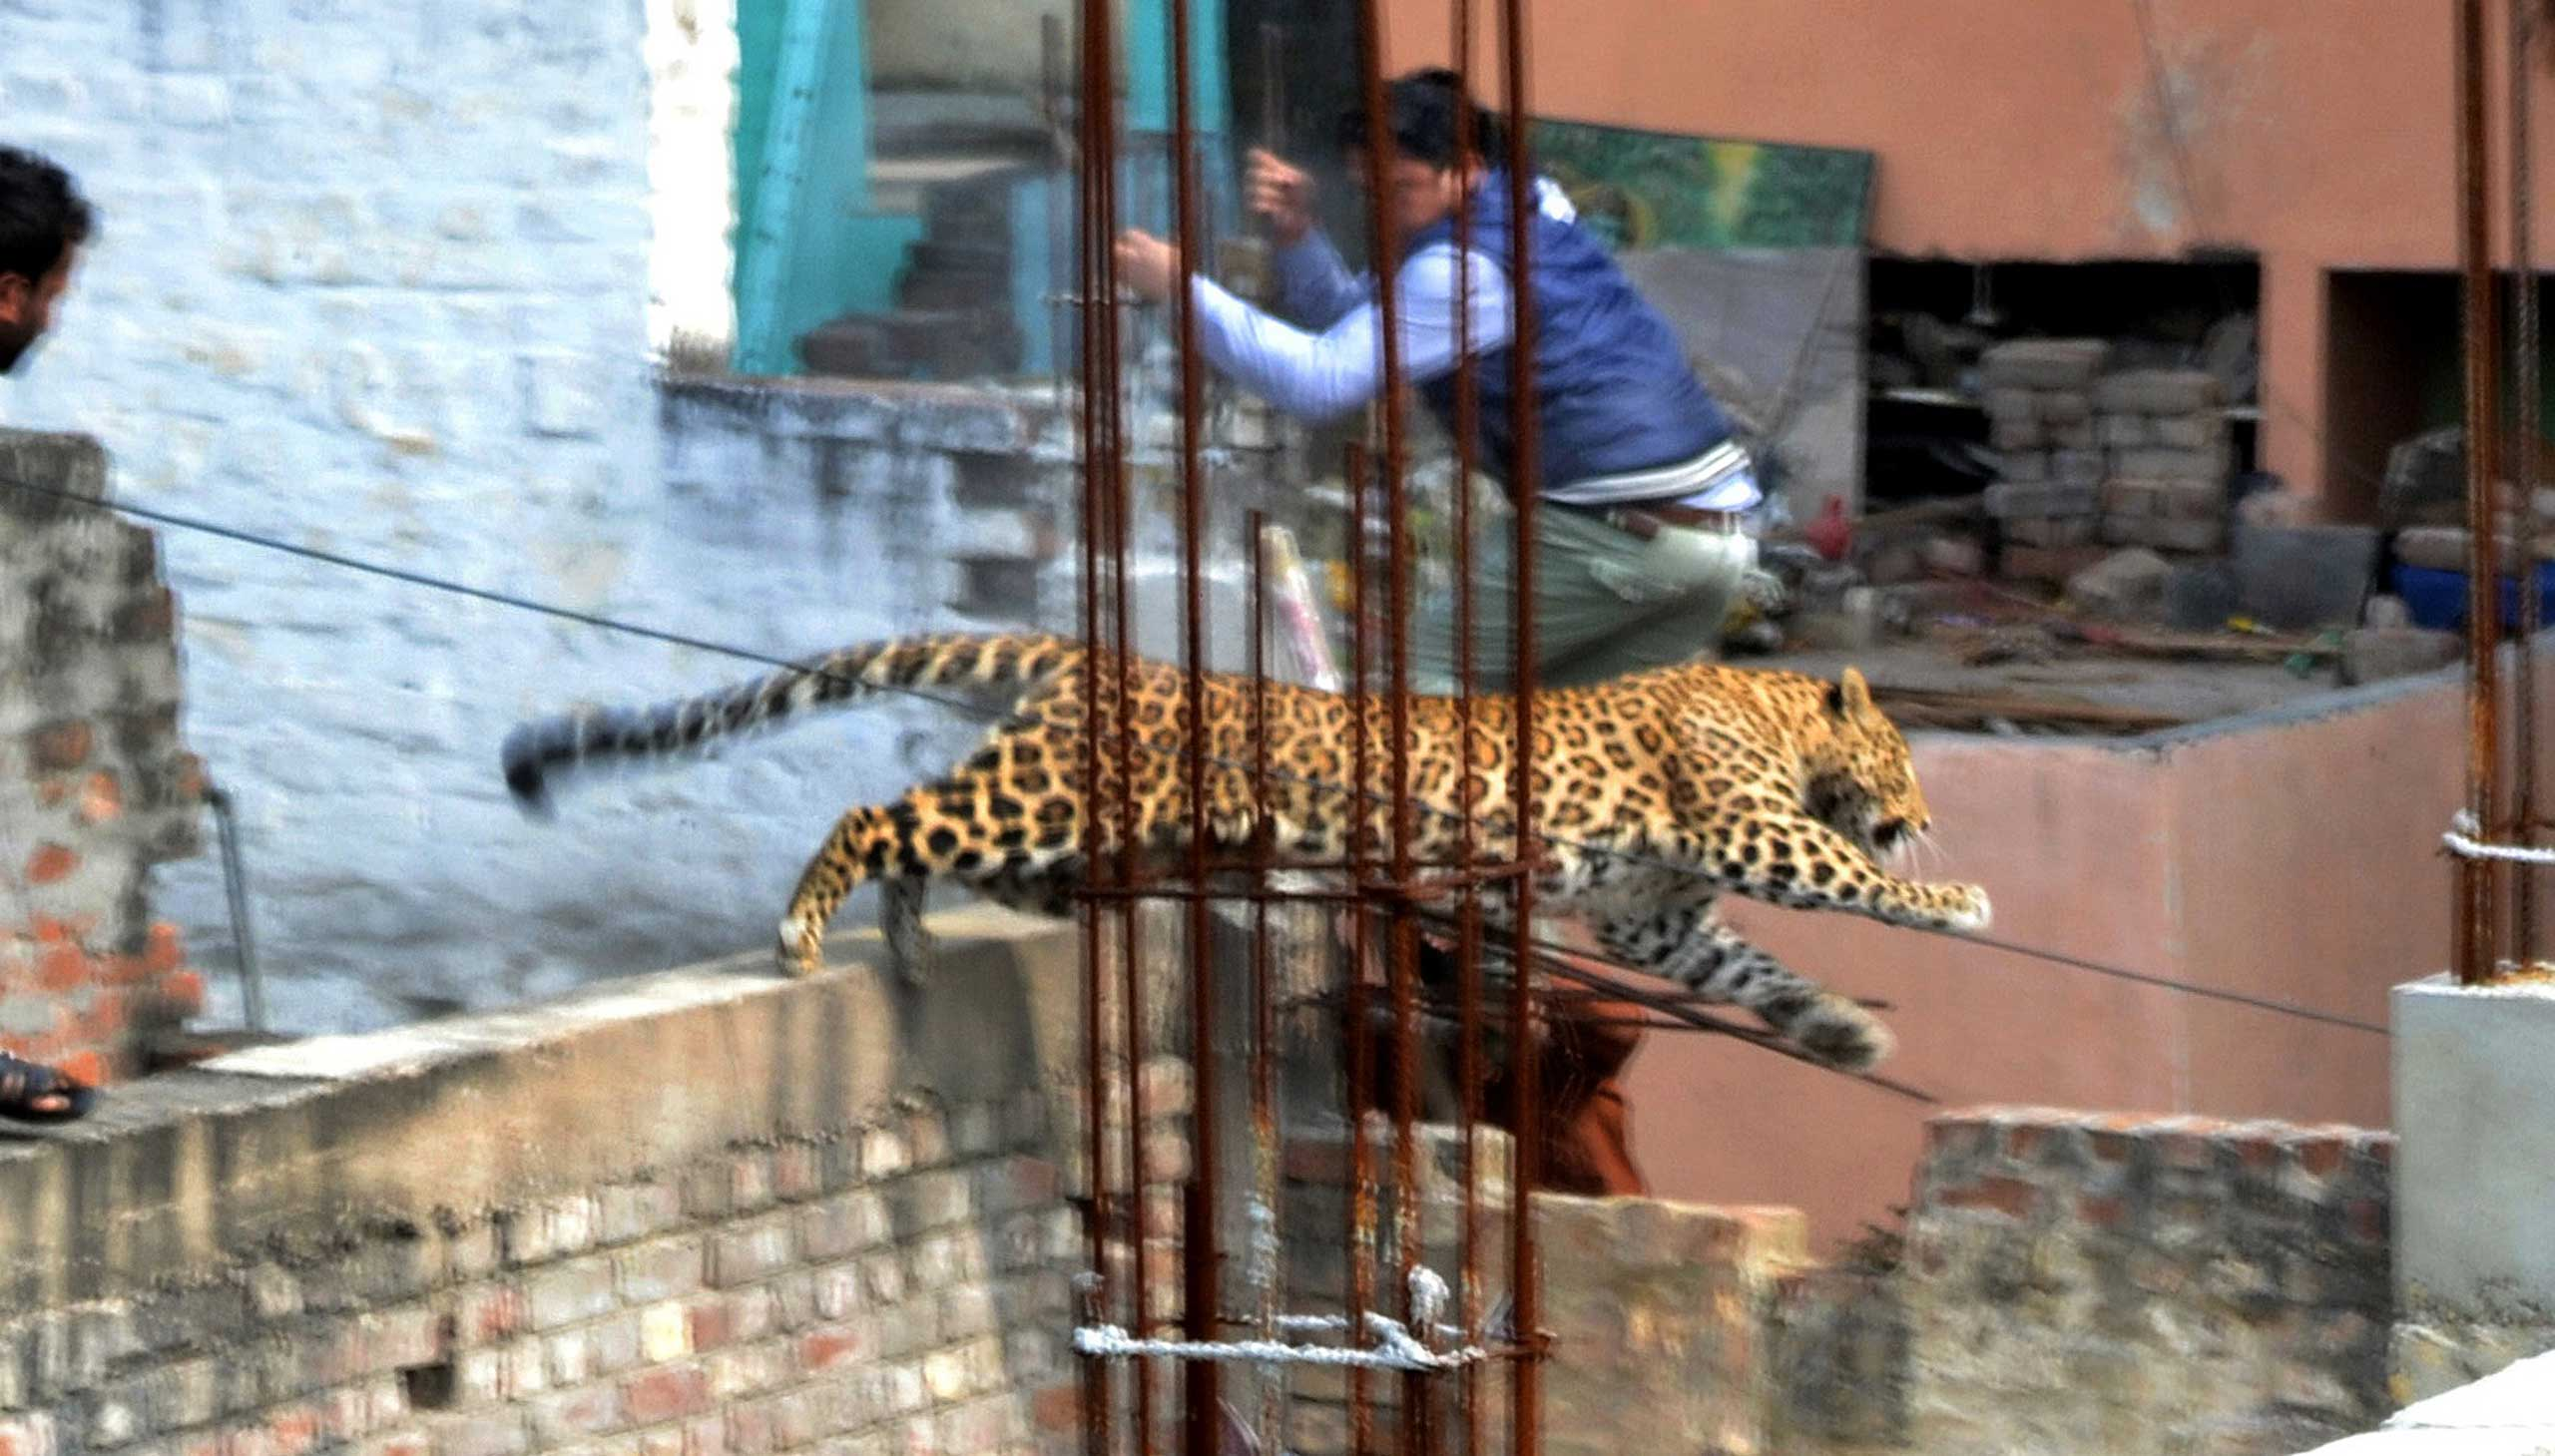 A leopard leaps across an under-construction structure near a furniture market in the Degumpur residential area as a bystander moves out of the way in Meerut, India, Feb. 23, 2014.